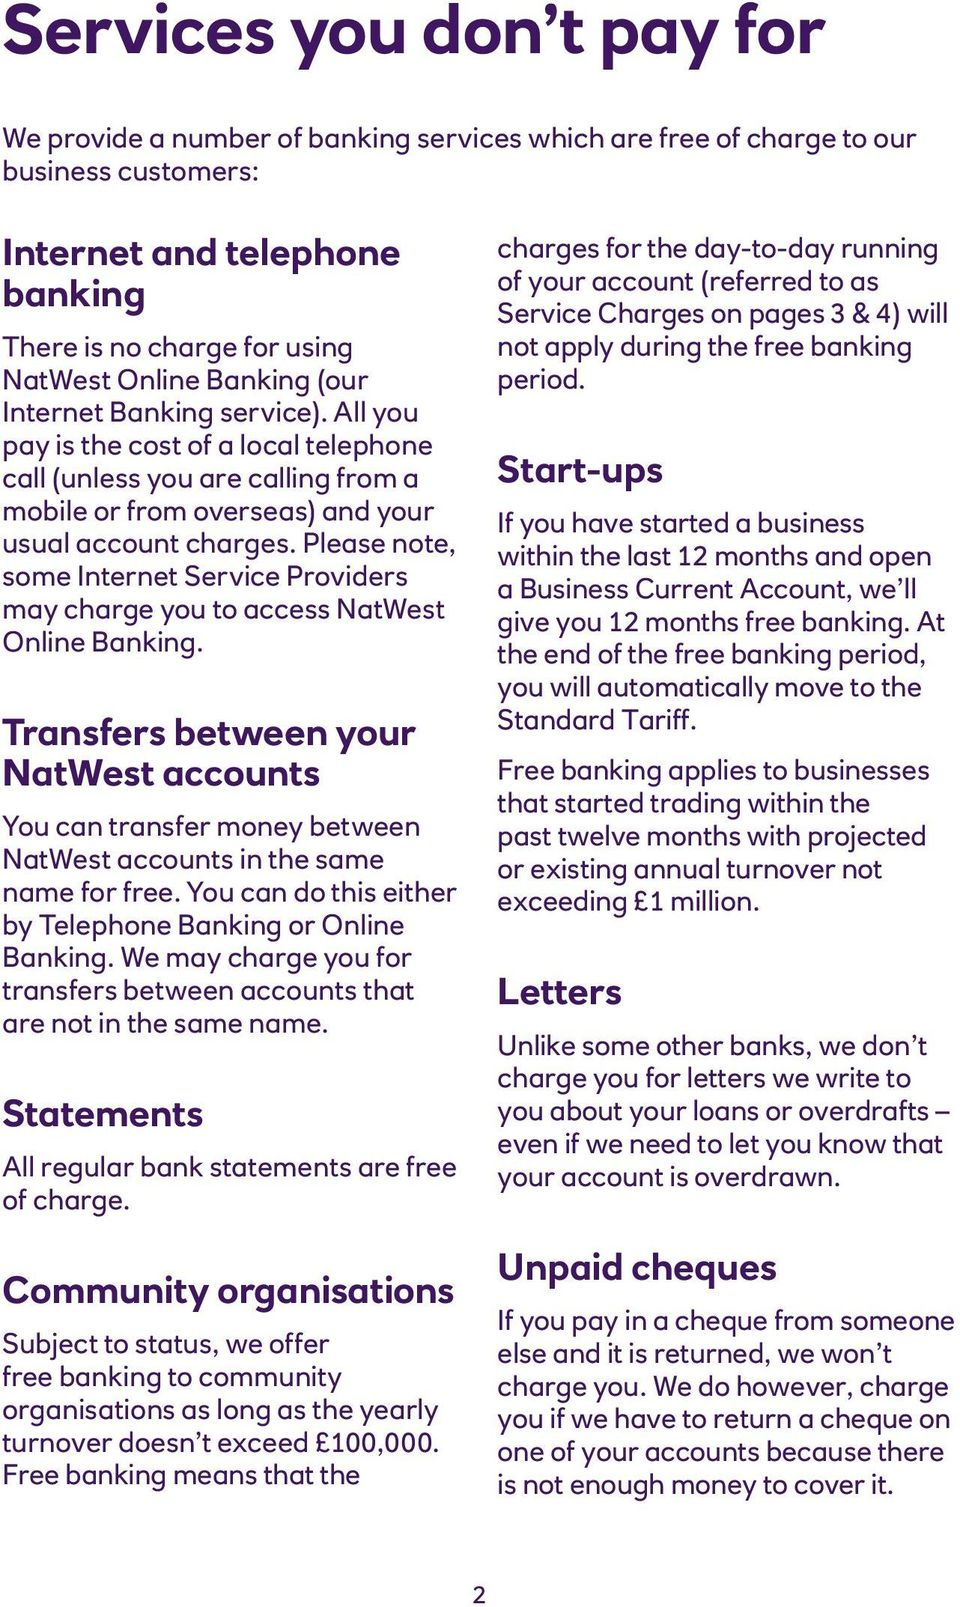 Please note, some Internet Service Providers may charge you to access NatWest Online Banking.